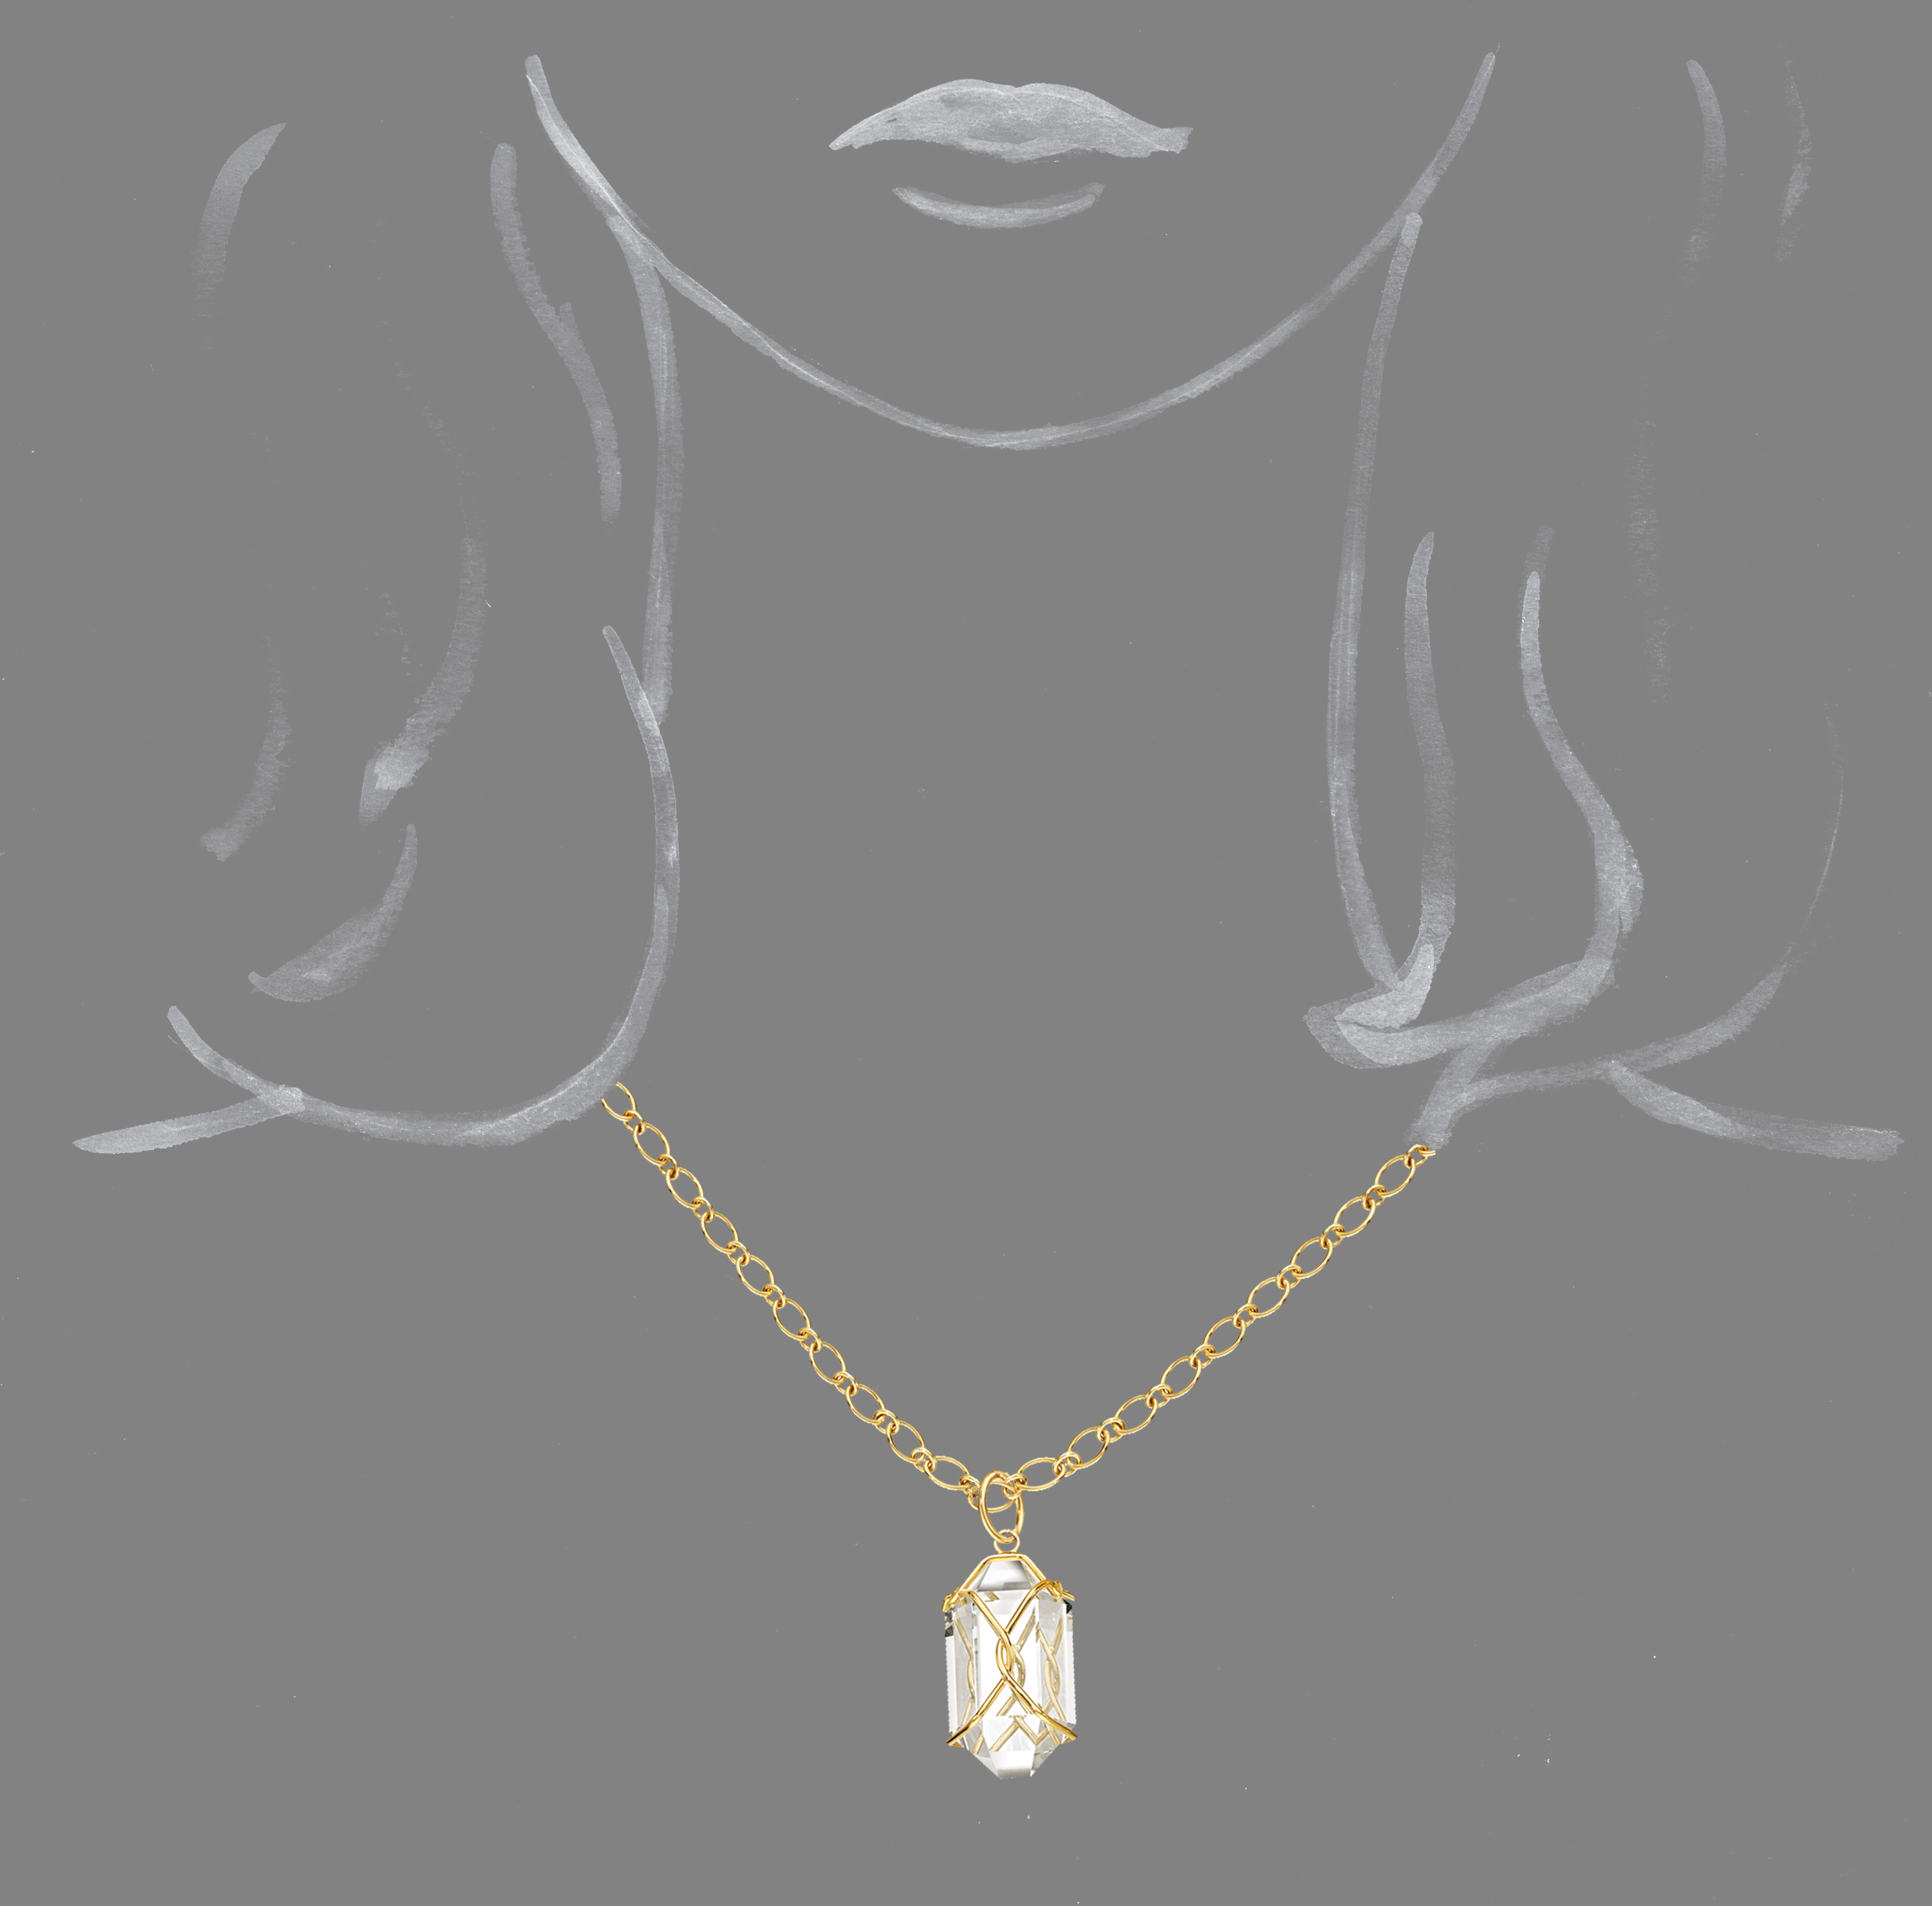 Verdura-Jewelry-Herkimer-Necklace-Rock-Crystal-Scale-Rendering